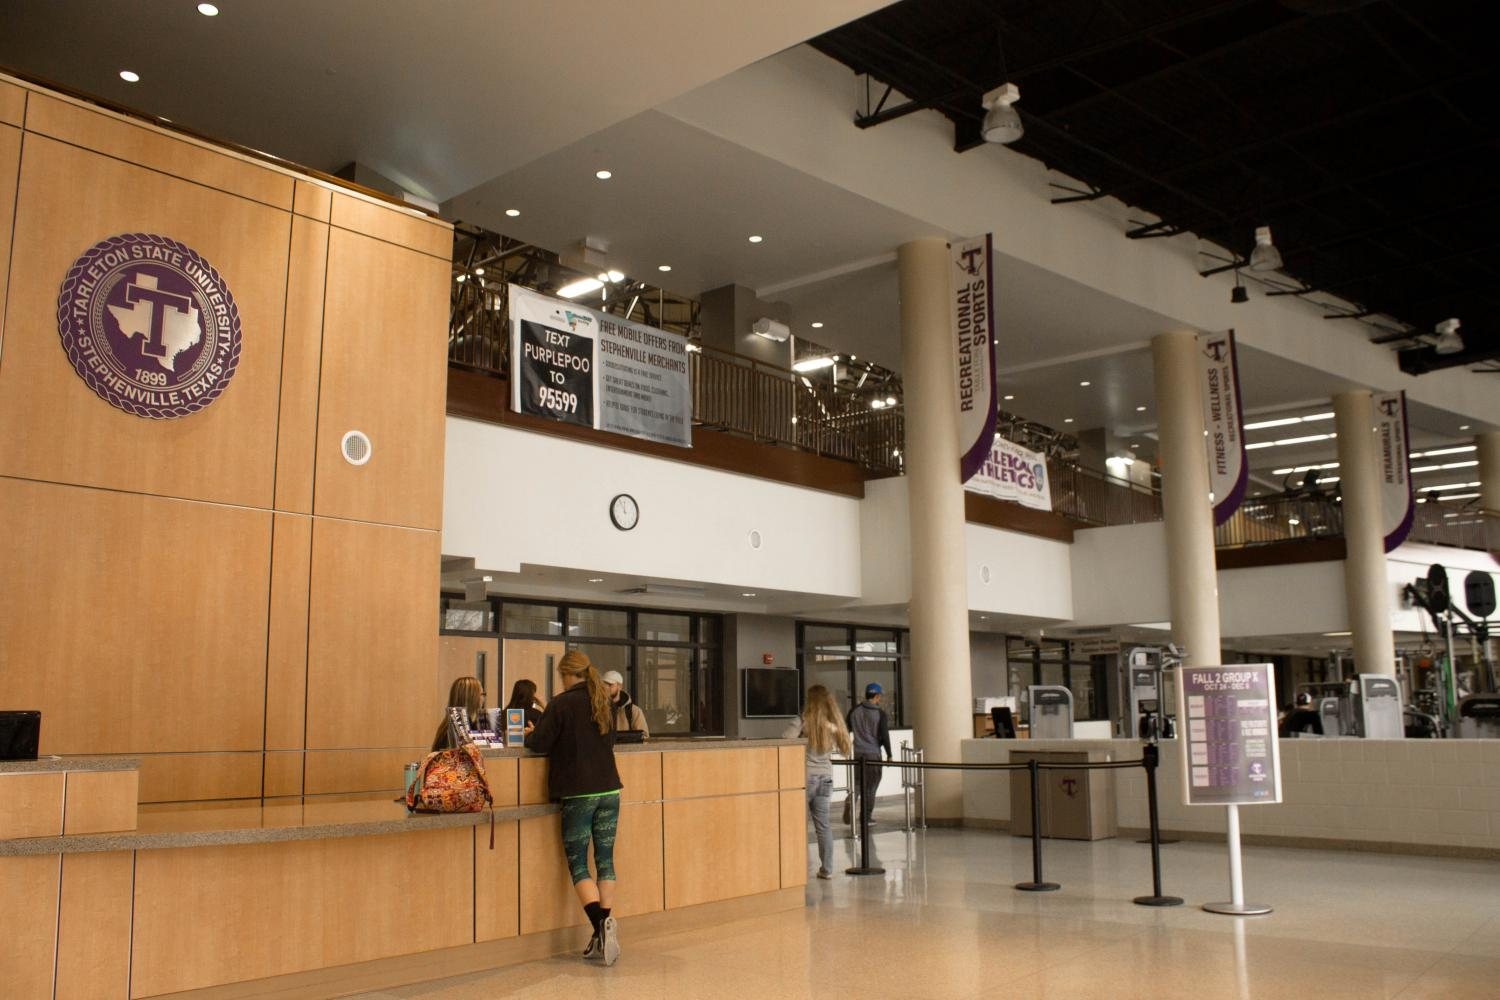 The entryway of the Rec Center.